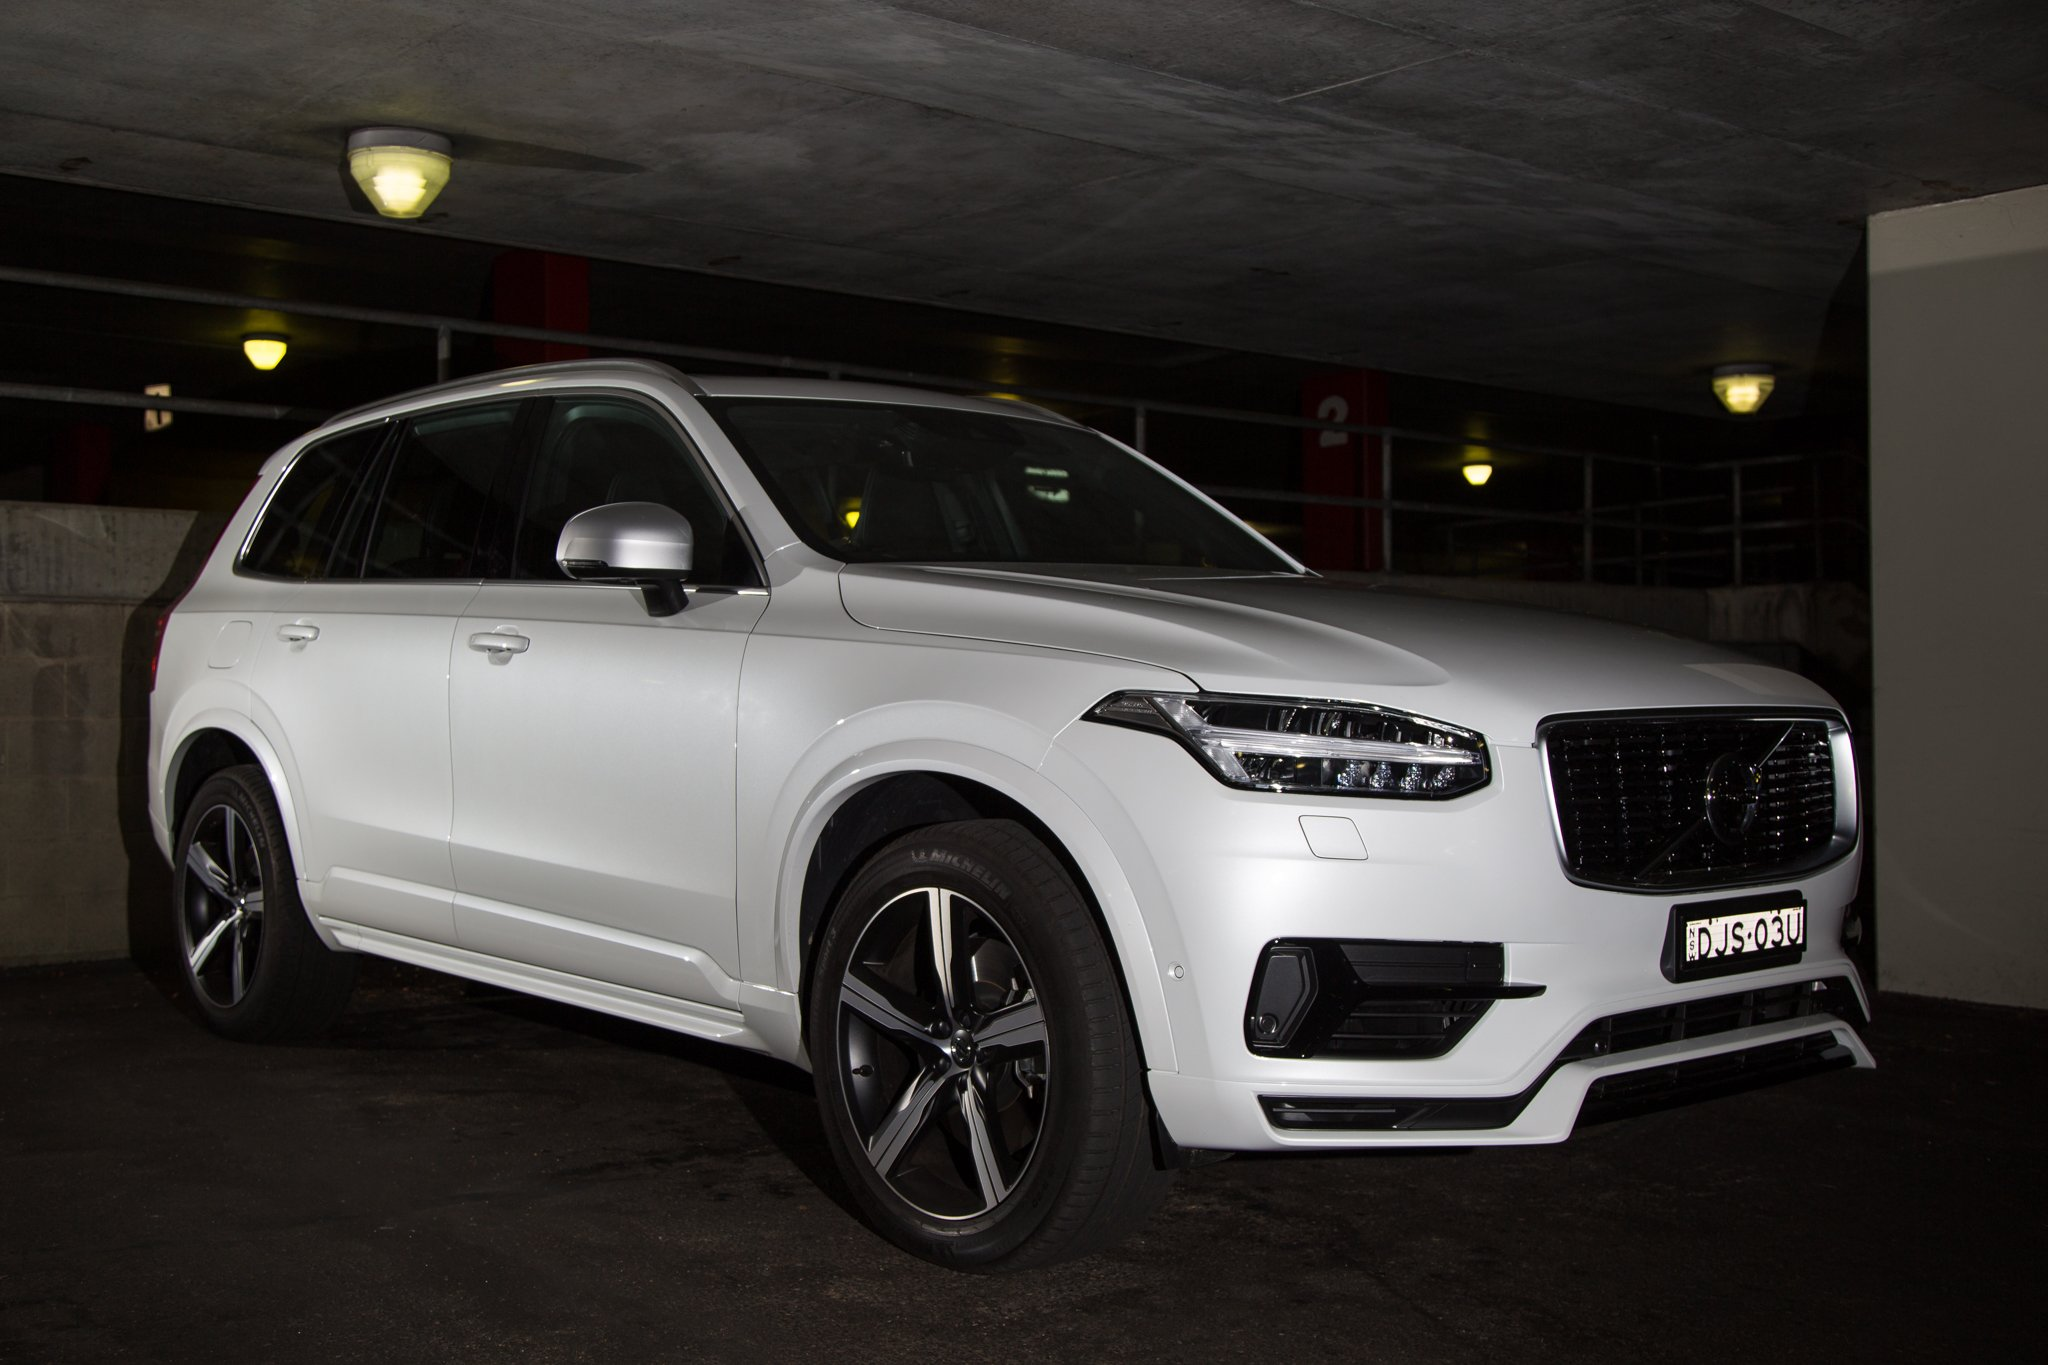 Auto Review: 2017 Volvo XC90 T8 R-Design